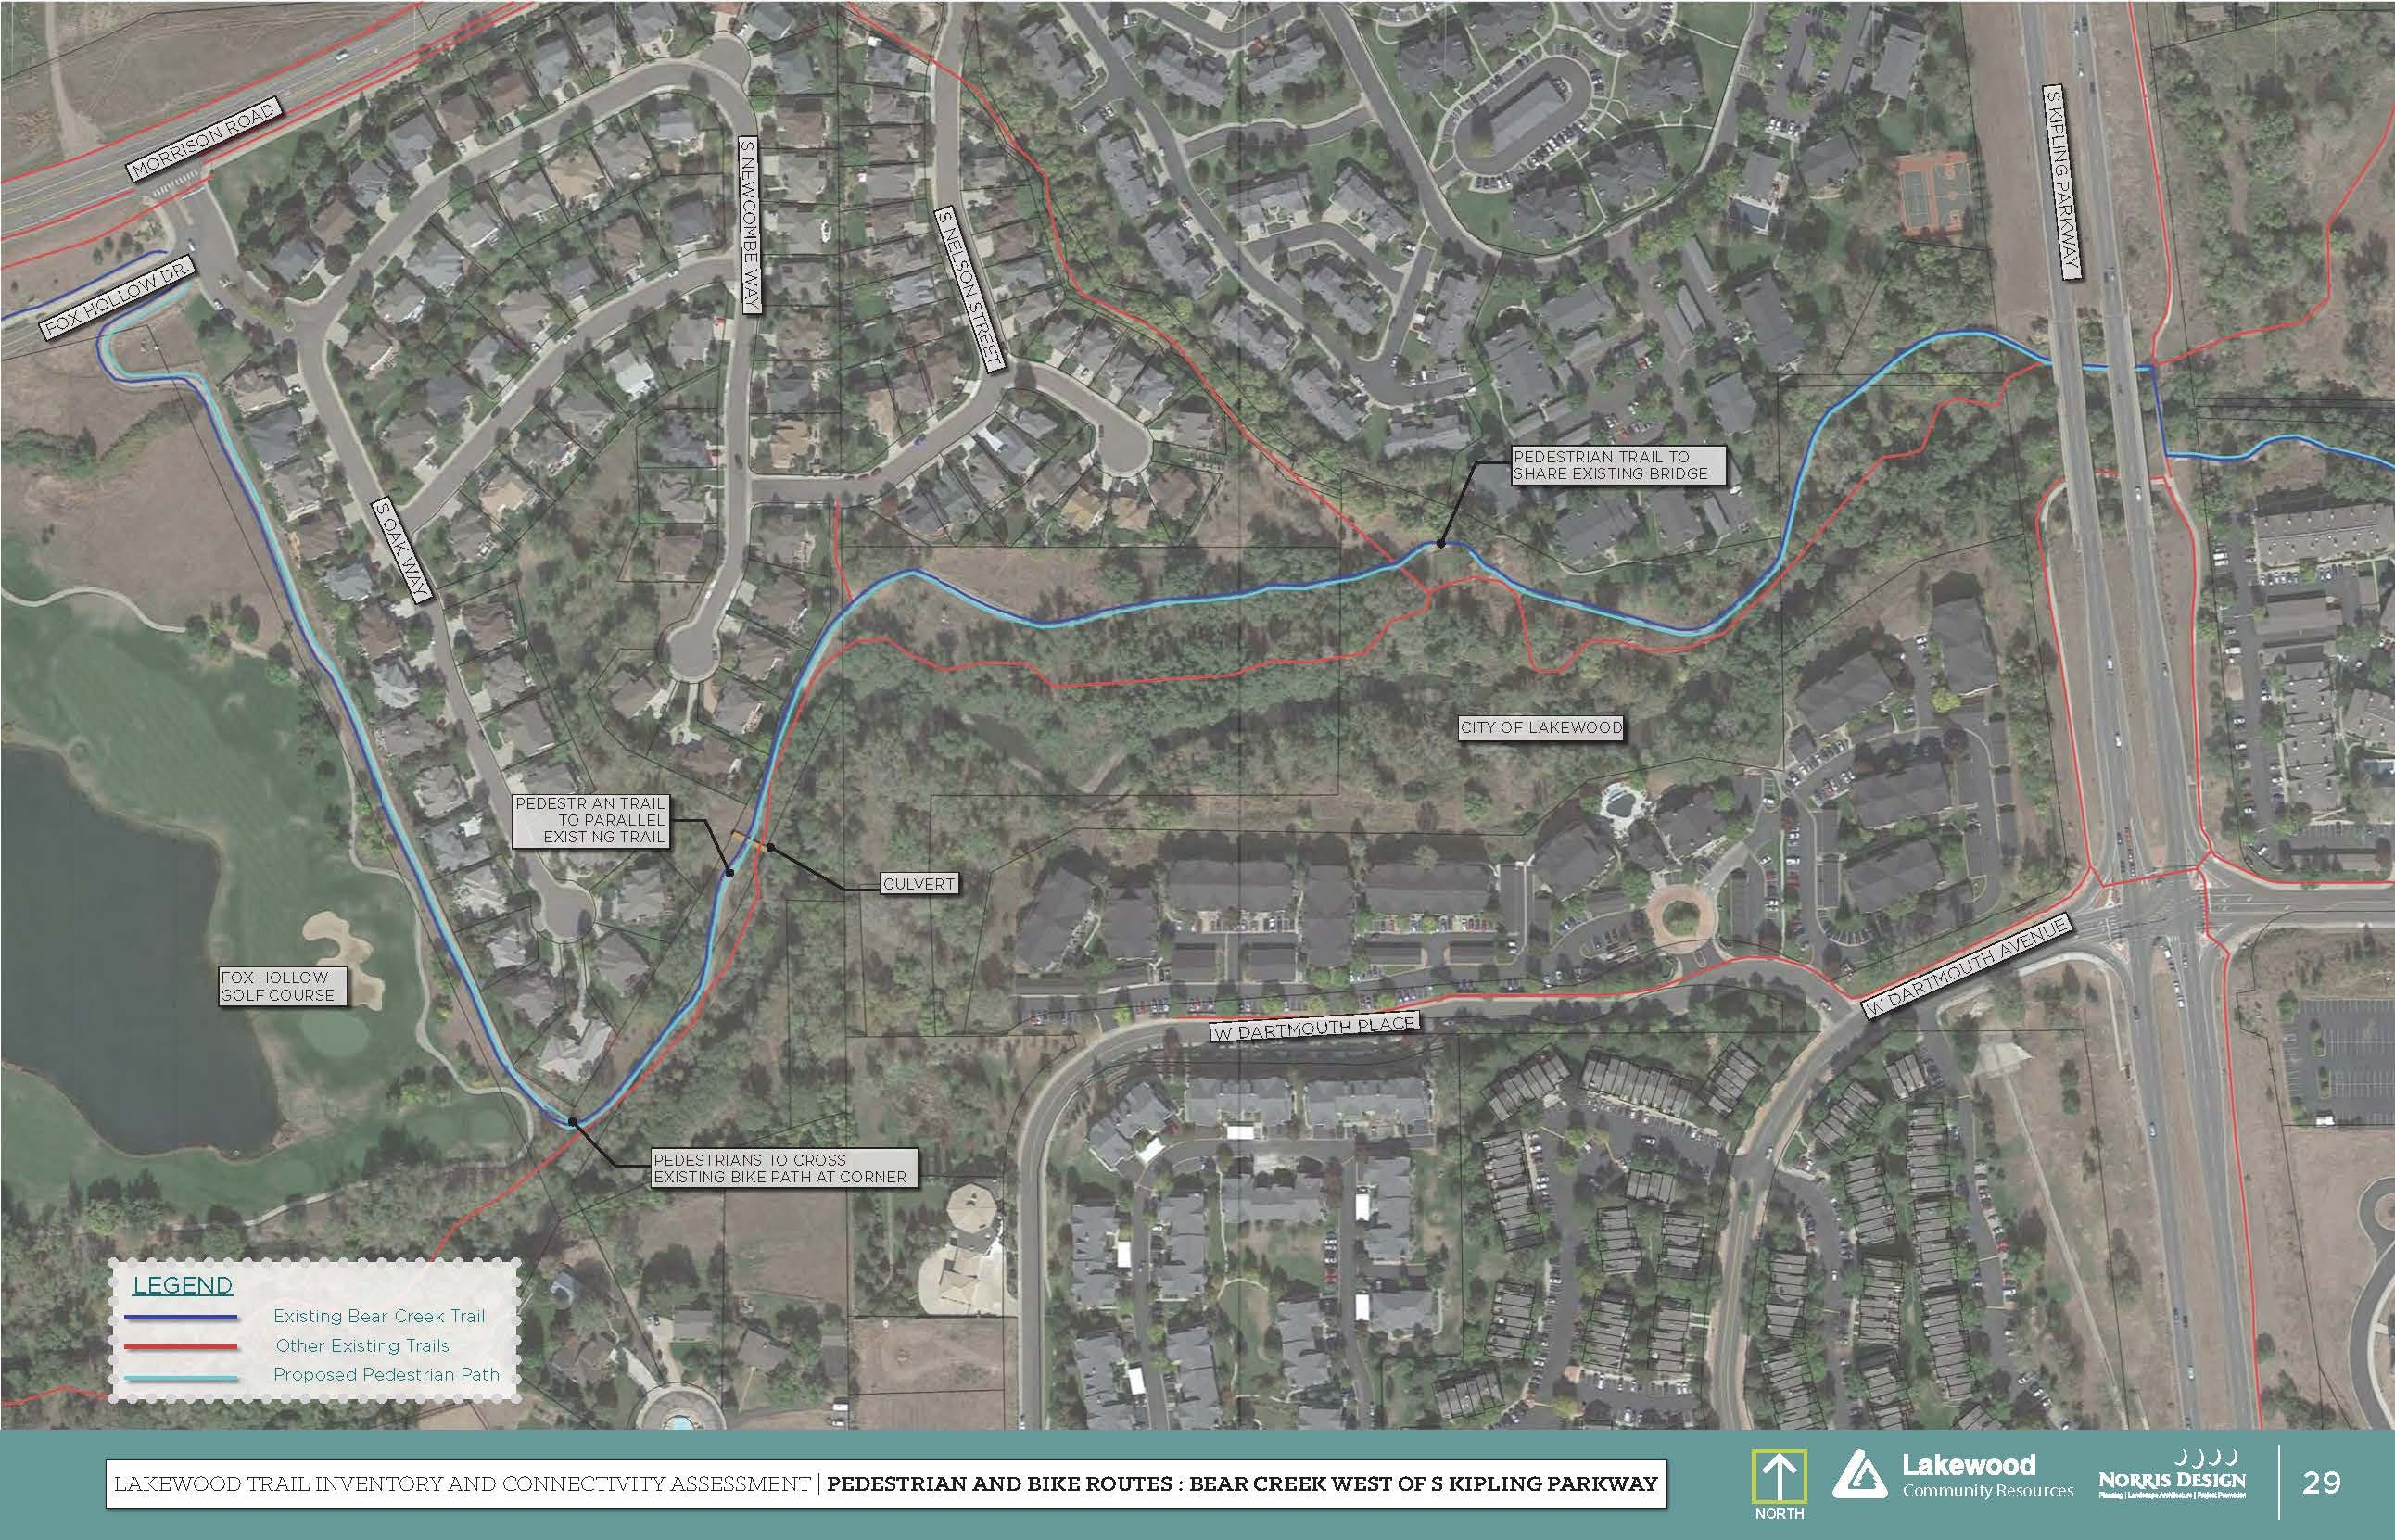 Improvements Map West of S. Kipling Parkway